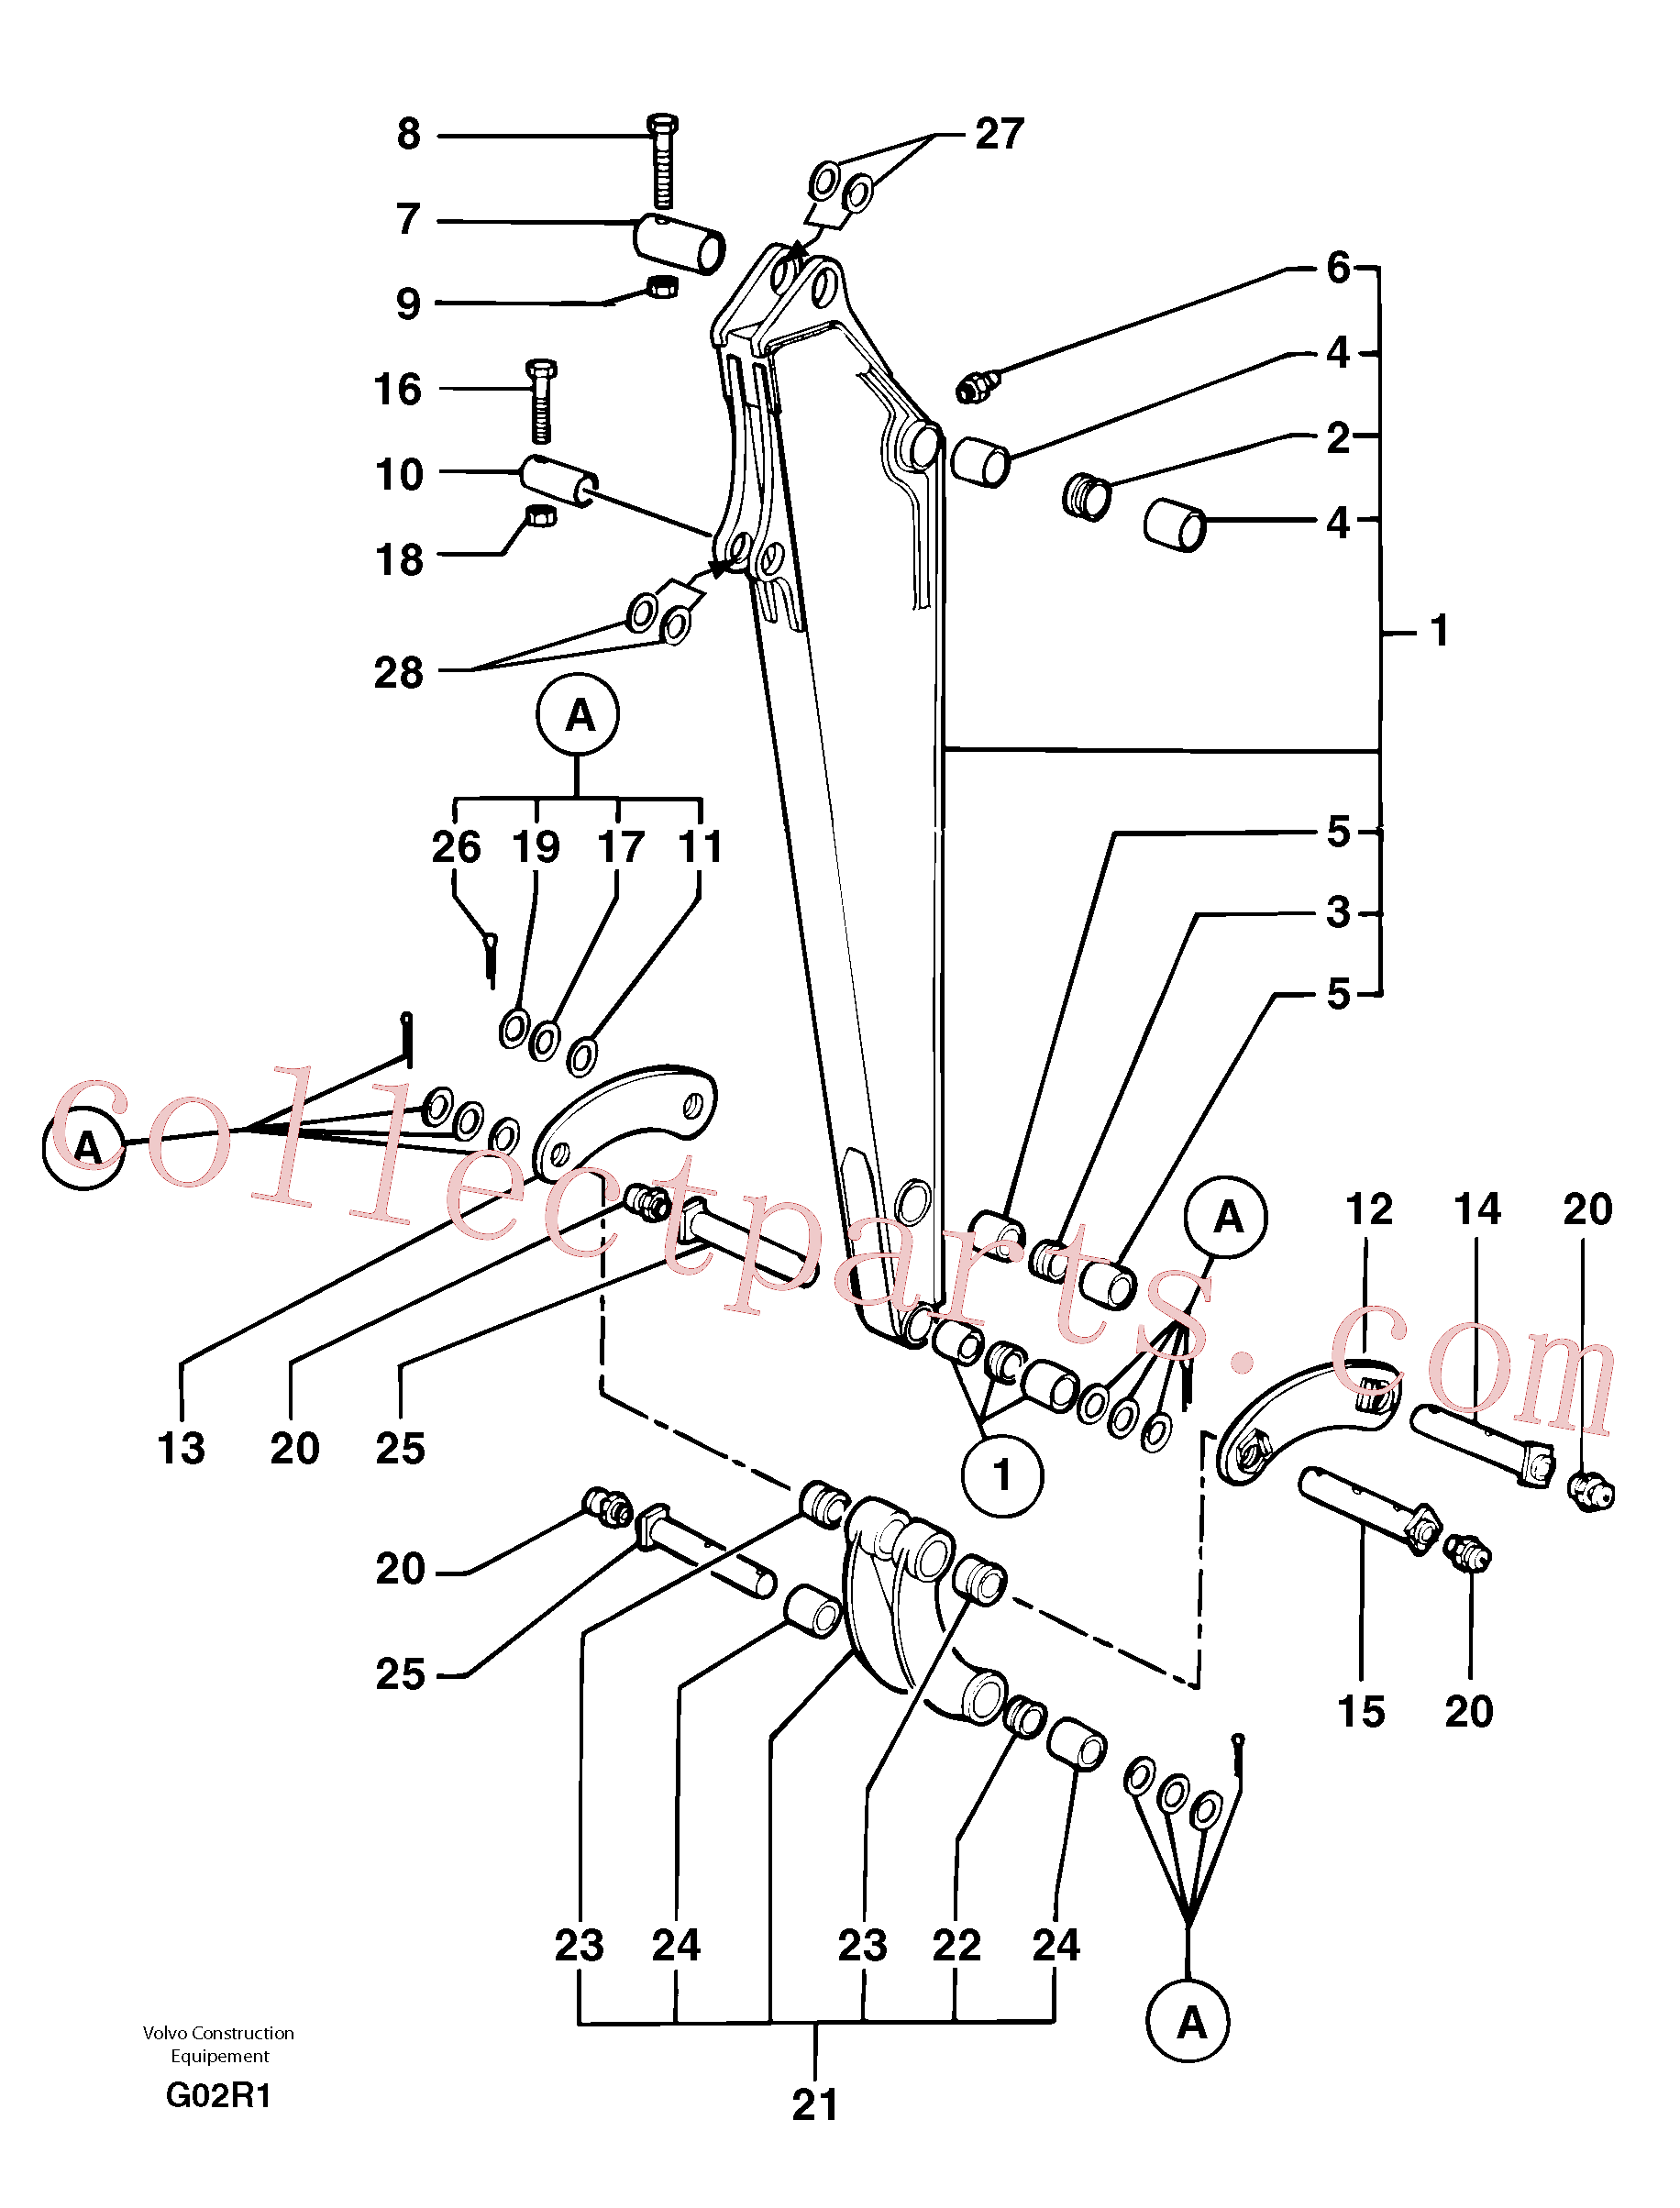 PJ5540099 for Volvo Dipper arm(G02R1 assembly)